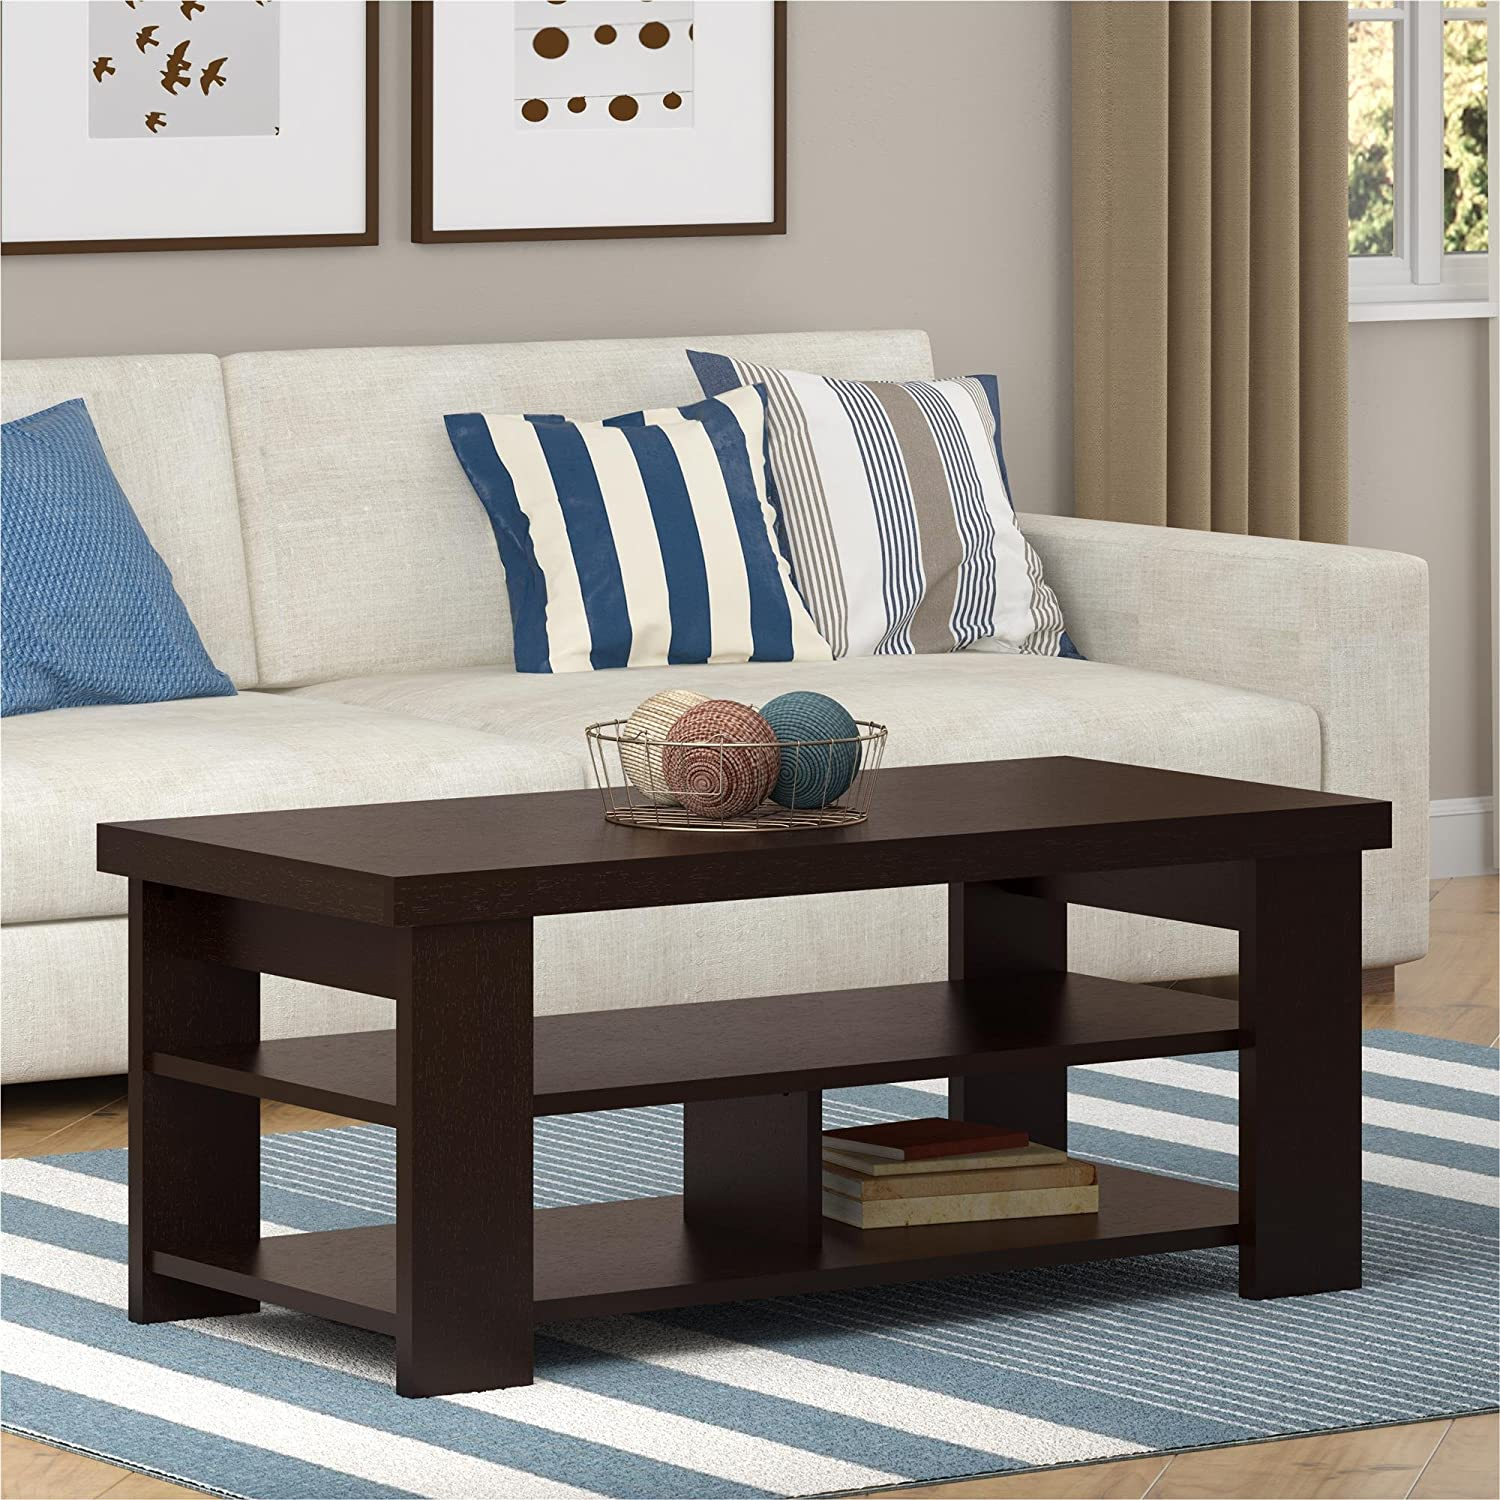 Coffee tables amazon ameriwood home jensen coffee table espresso geotapseo Image collections